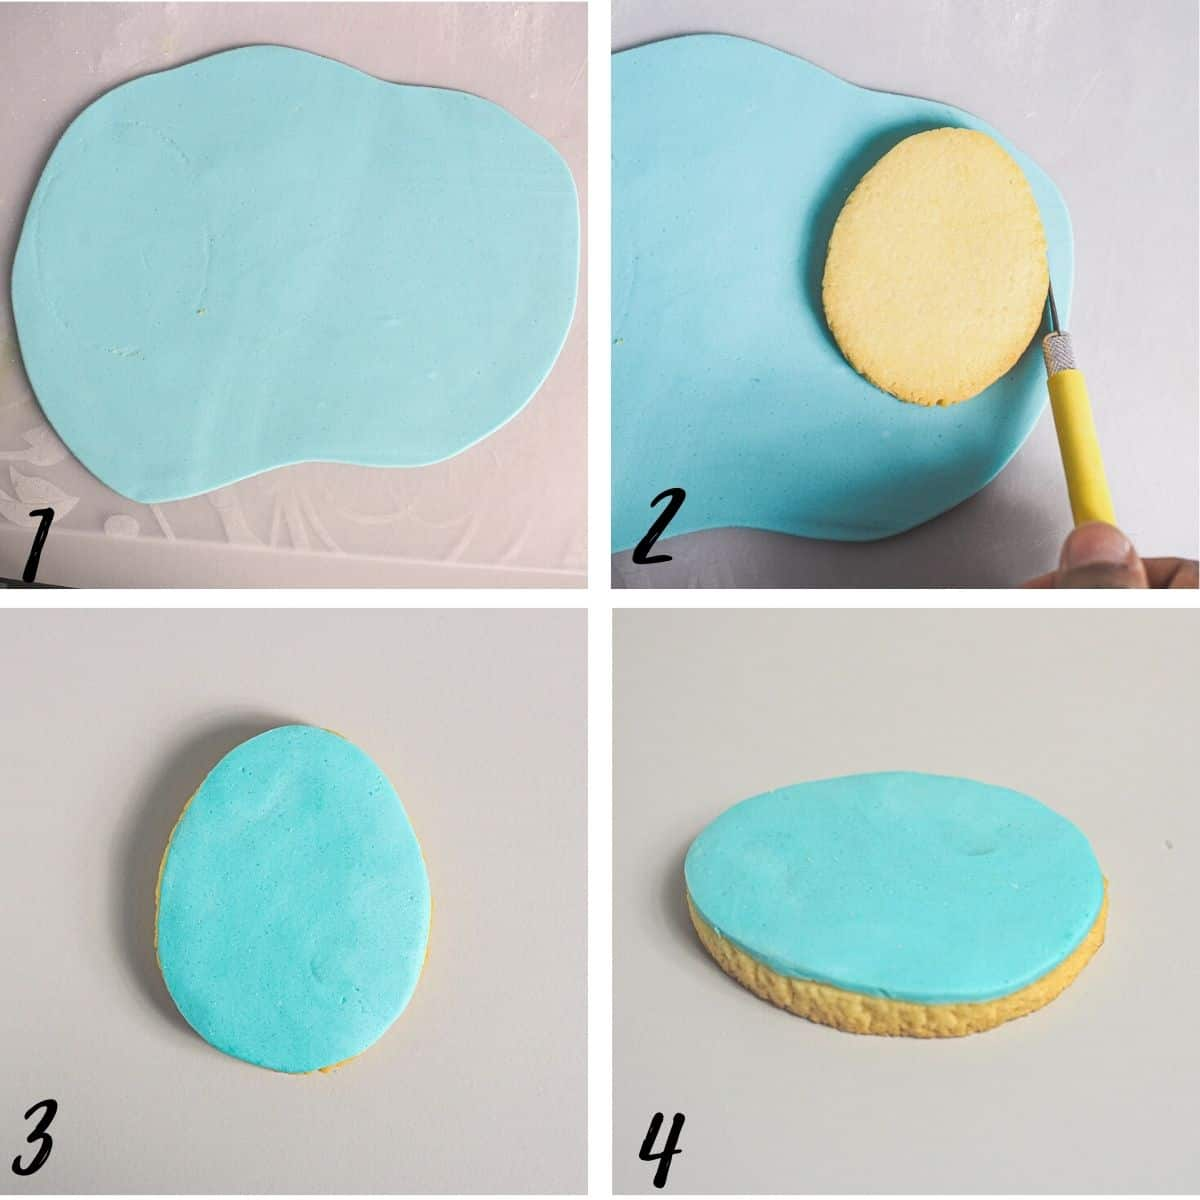 A poster of 4 images showing how to cover the top of an egg shaped cookie with blue fondant.